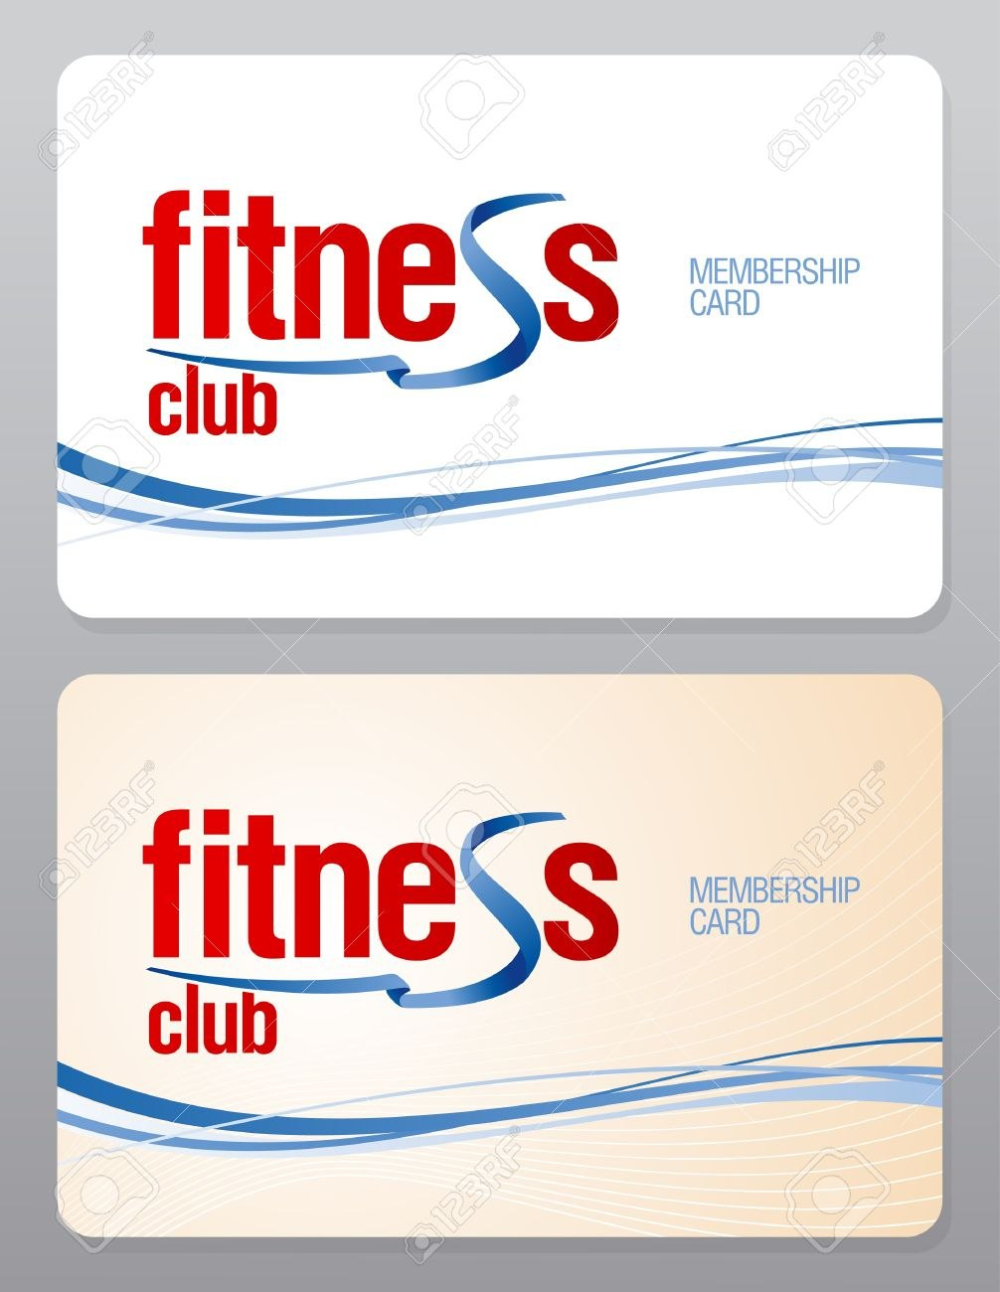 Fitness Club Membership Card Design Template Royalty Free Cliparts Pertaining To Gym Membership Gym Membership Card Membership Card Business Card Template Word